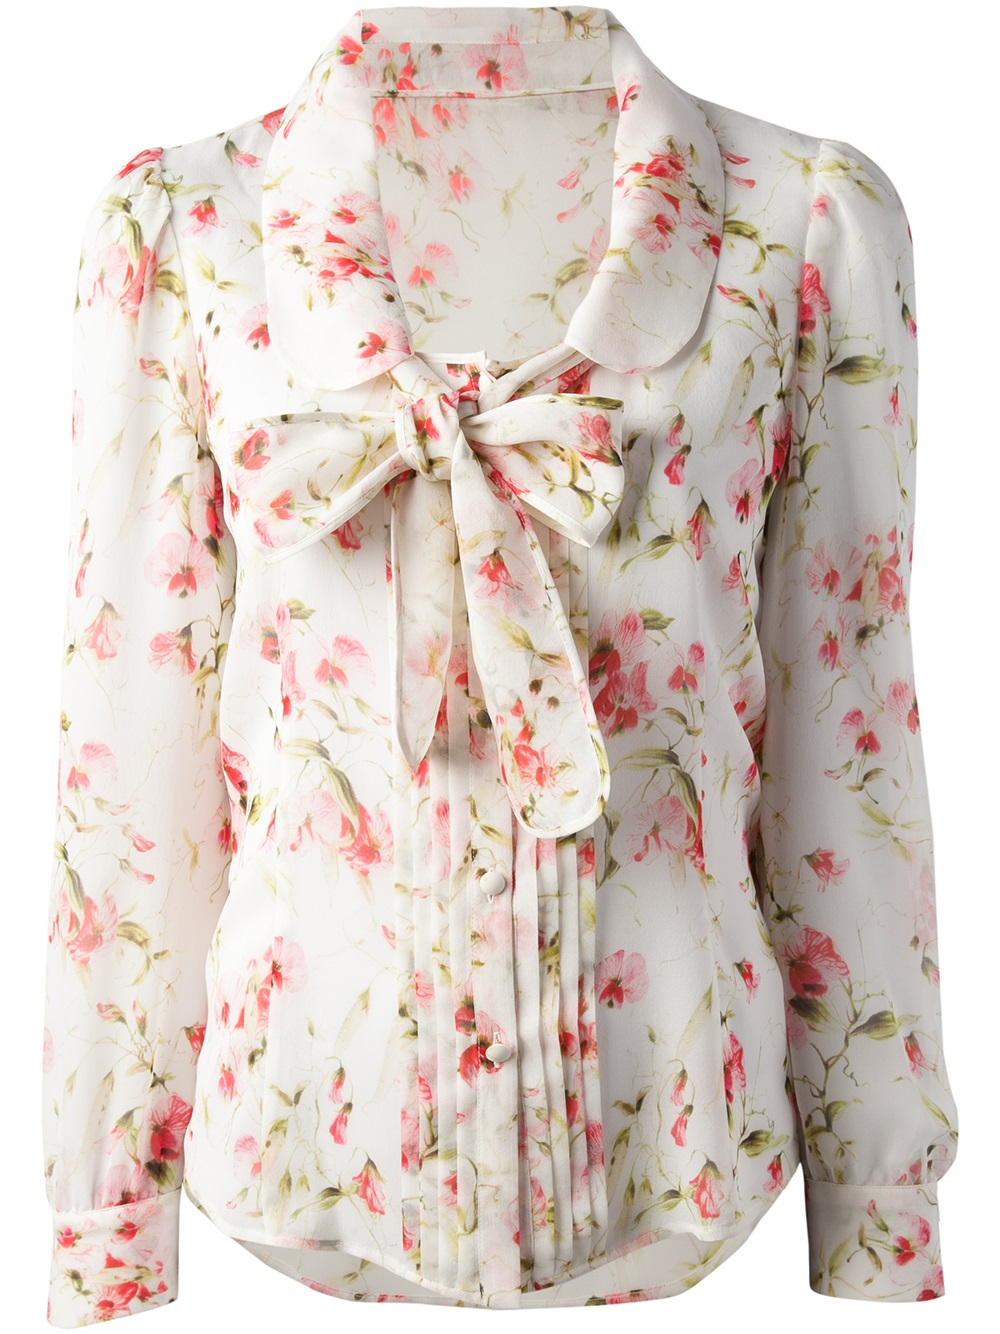 Shop floral print blouse at Neiman Marcus, where you will find free shipping on the latest in fashion from top designers.